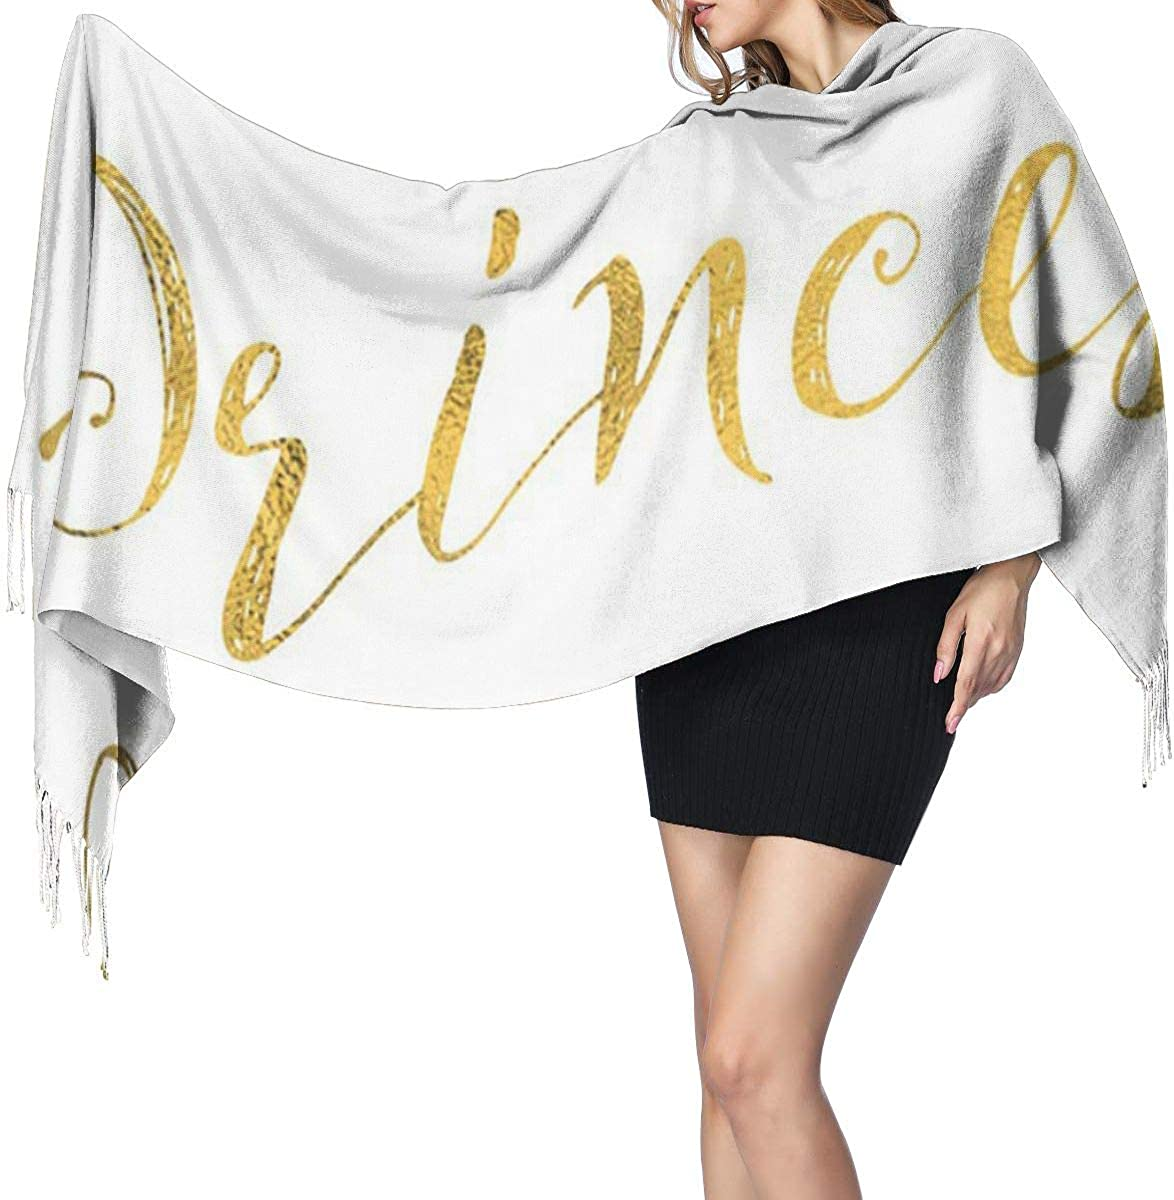 Fashion Lady Shawls,Comfortable Warm Winter Scarfs Soft Cashmere Scarf For Women Glittery Princess Gold Faux Foil Metallic Glitter Inspirational Quote White Motivational